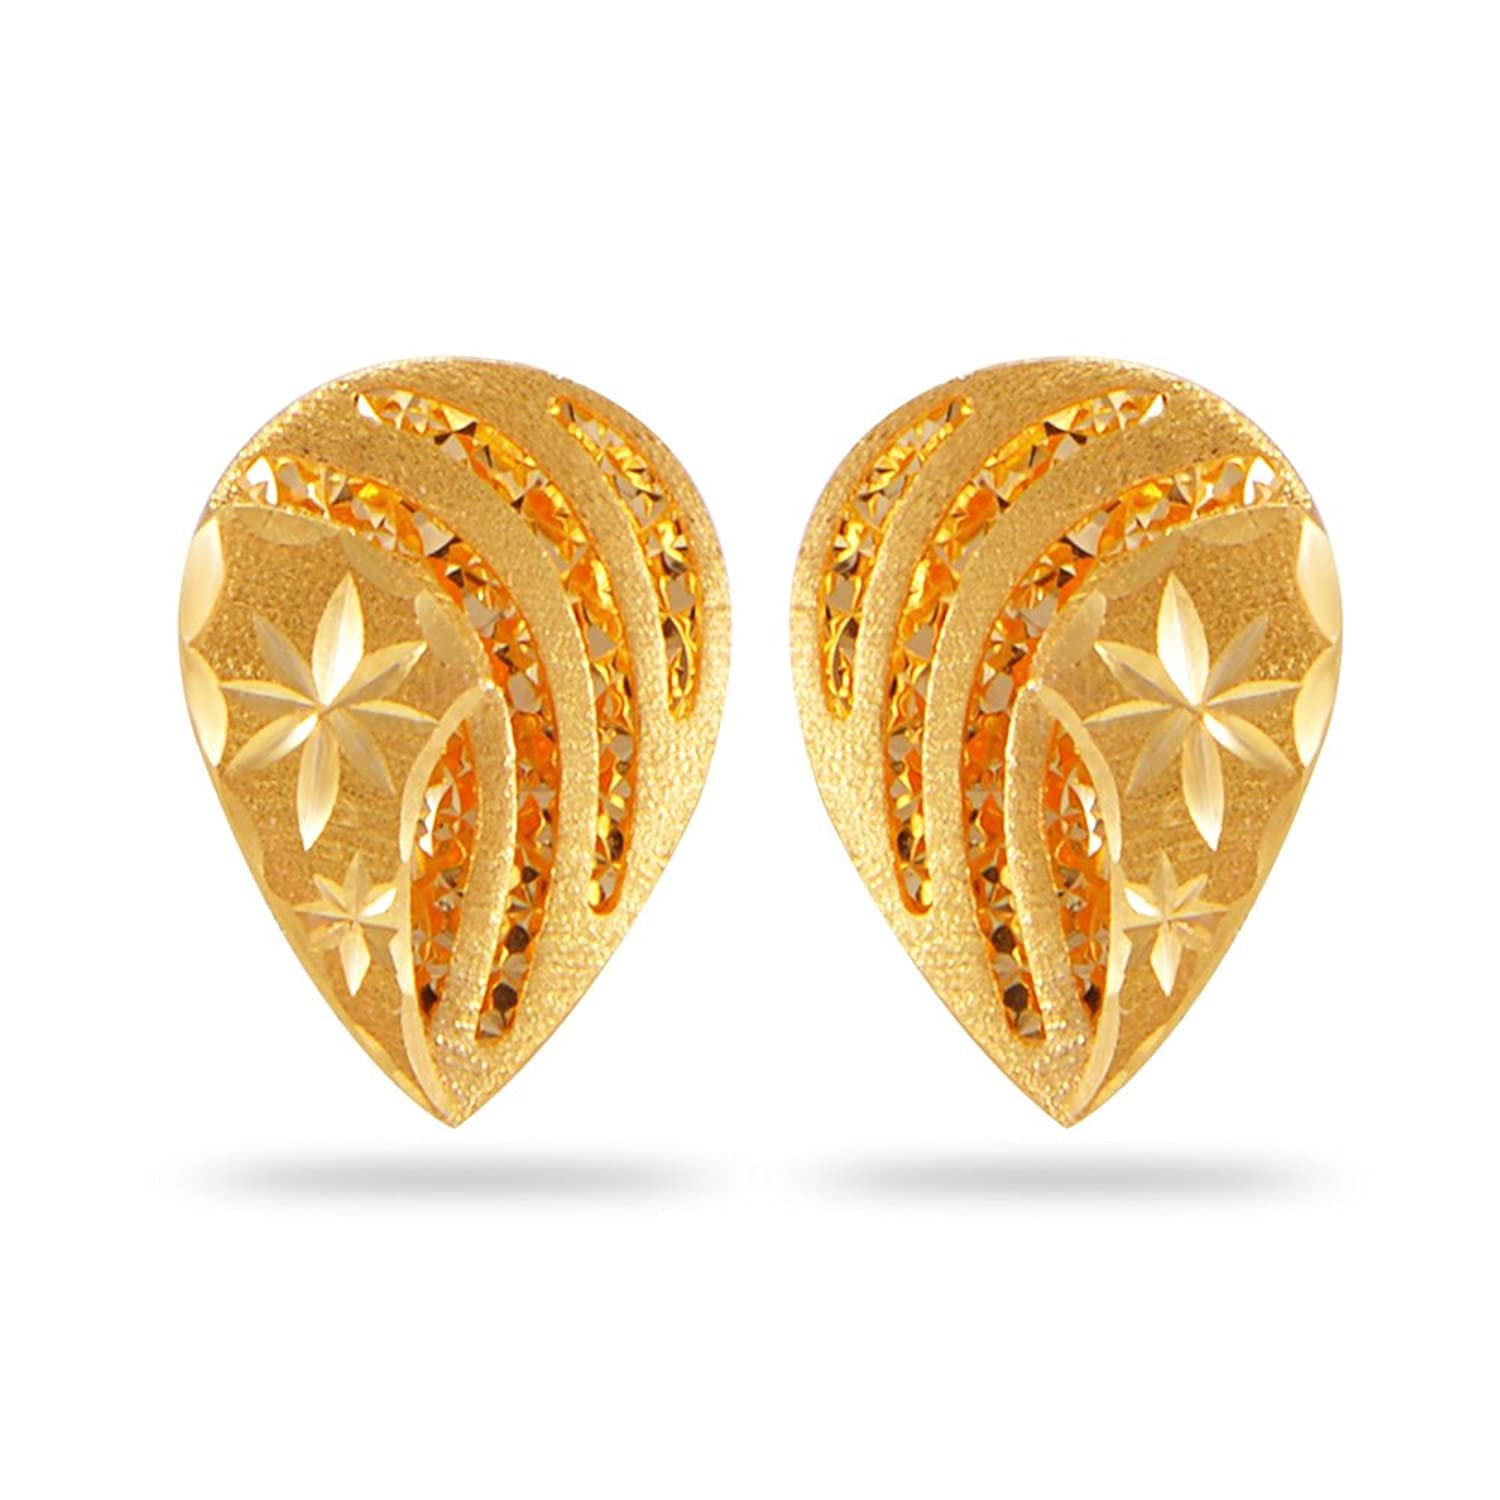 detail ee spec earrings products sgs dr gold jewellery